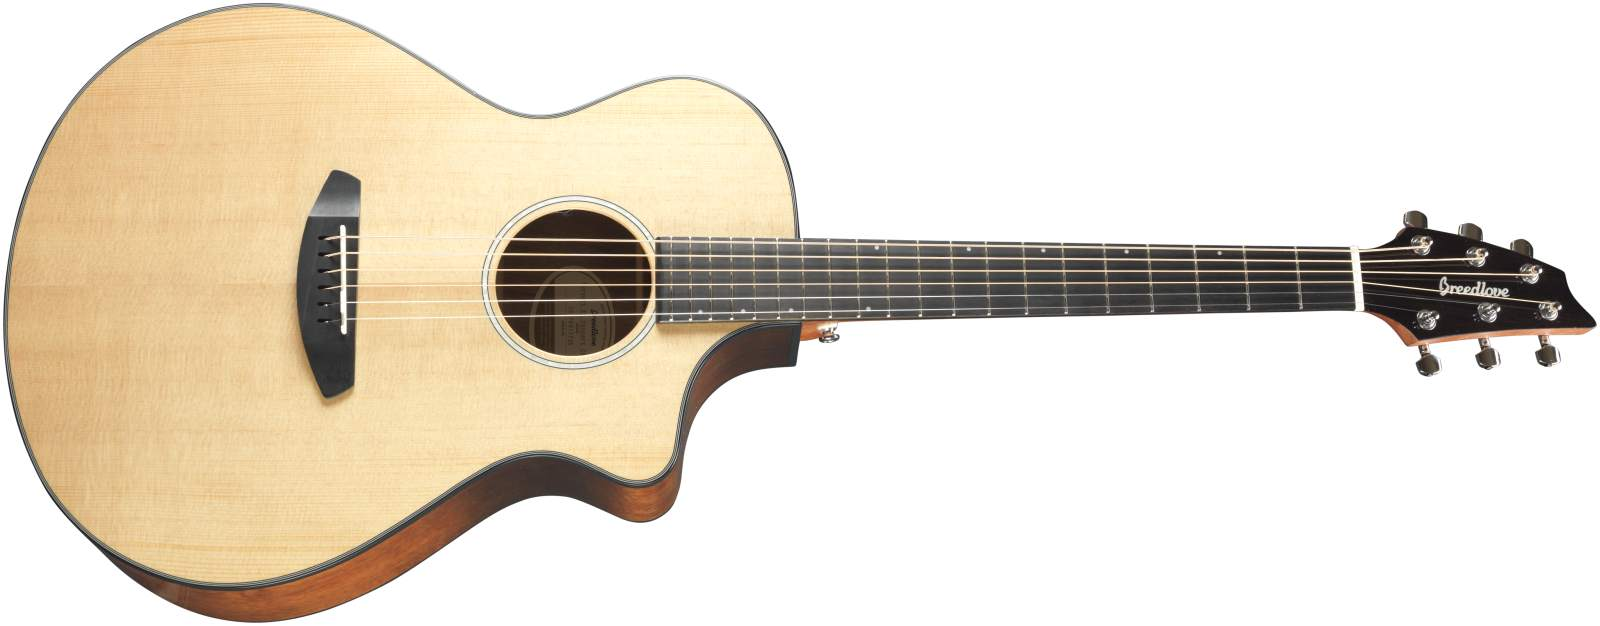 Breedlove Pursuit Exotic Concert CE